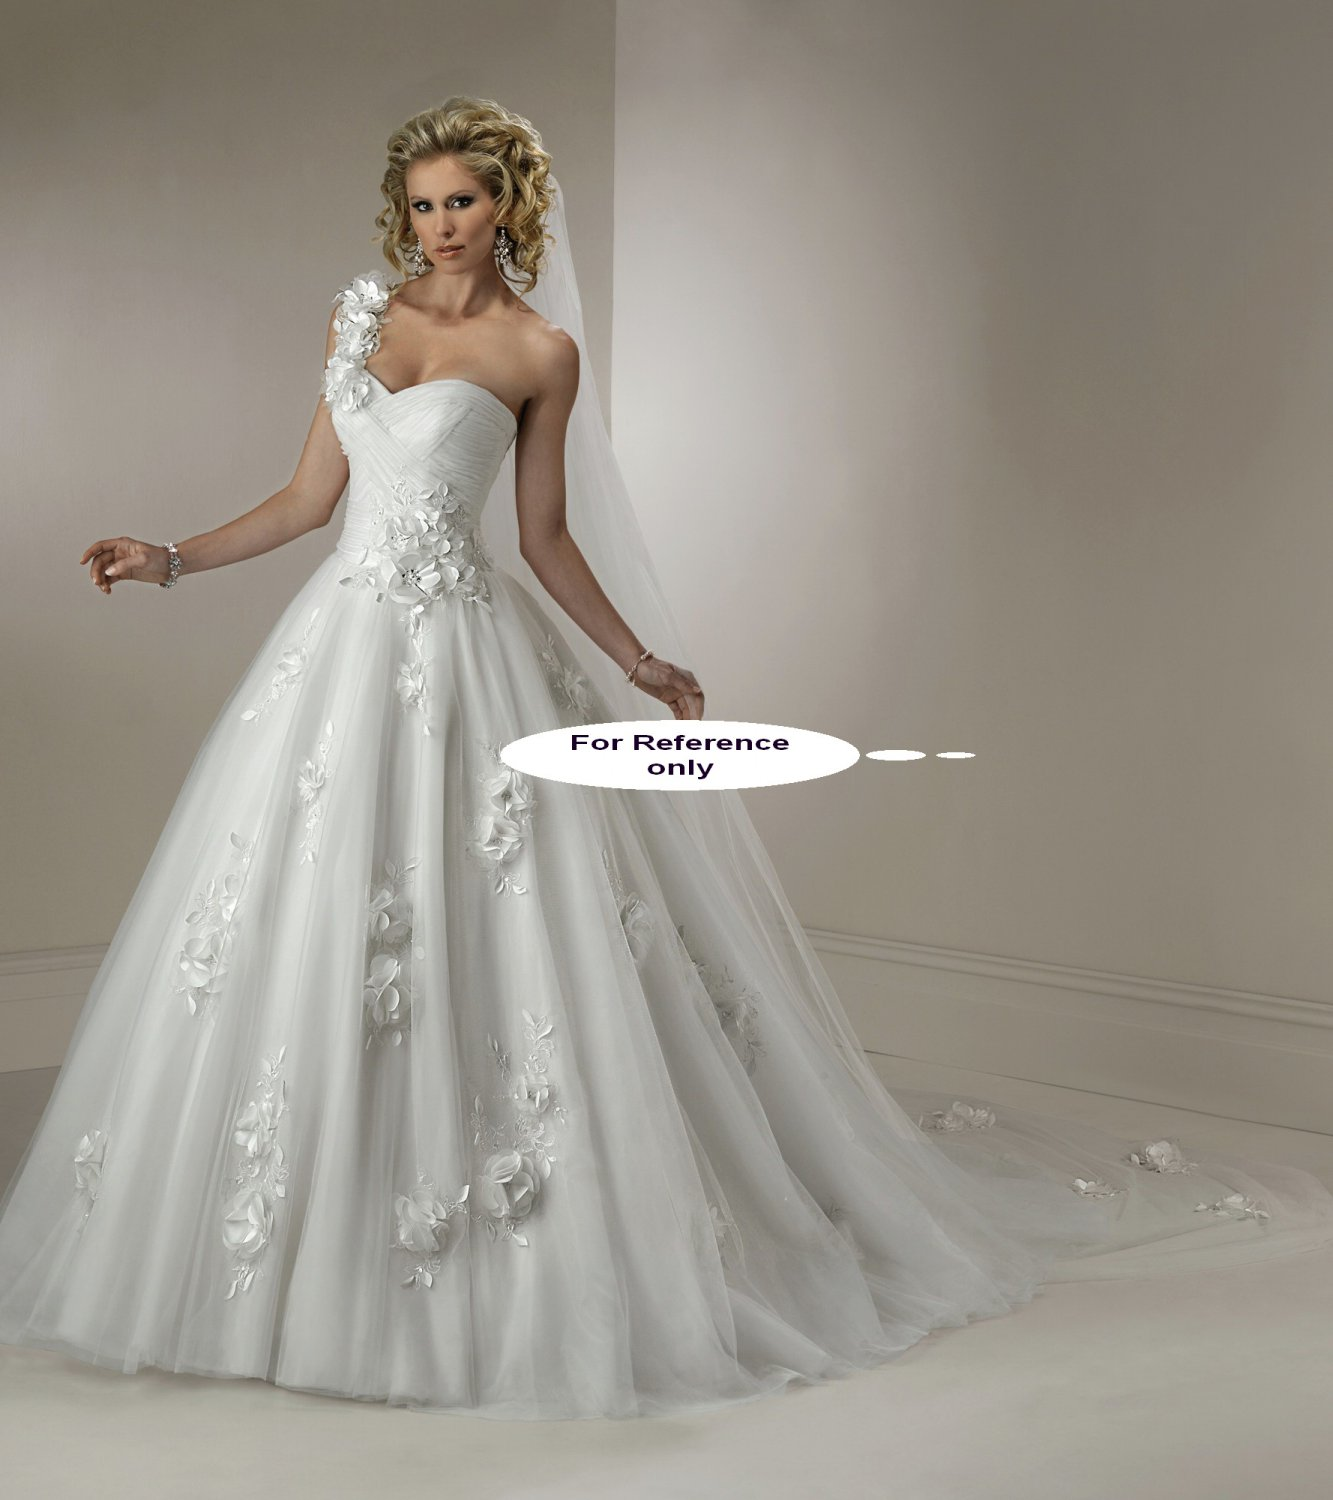 Sweet heart one shoulder ball gown-1425